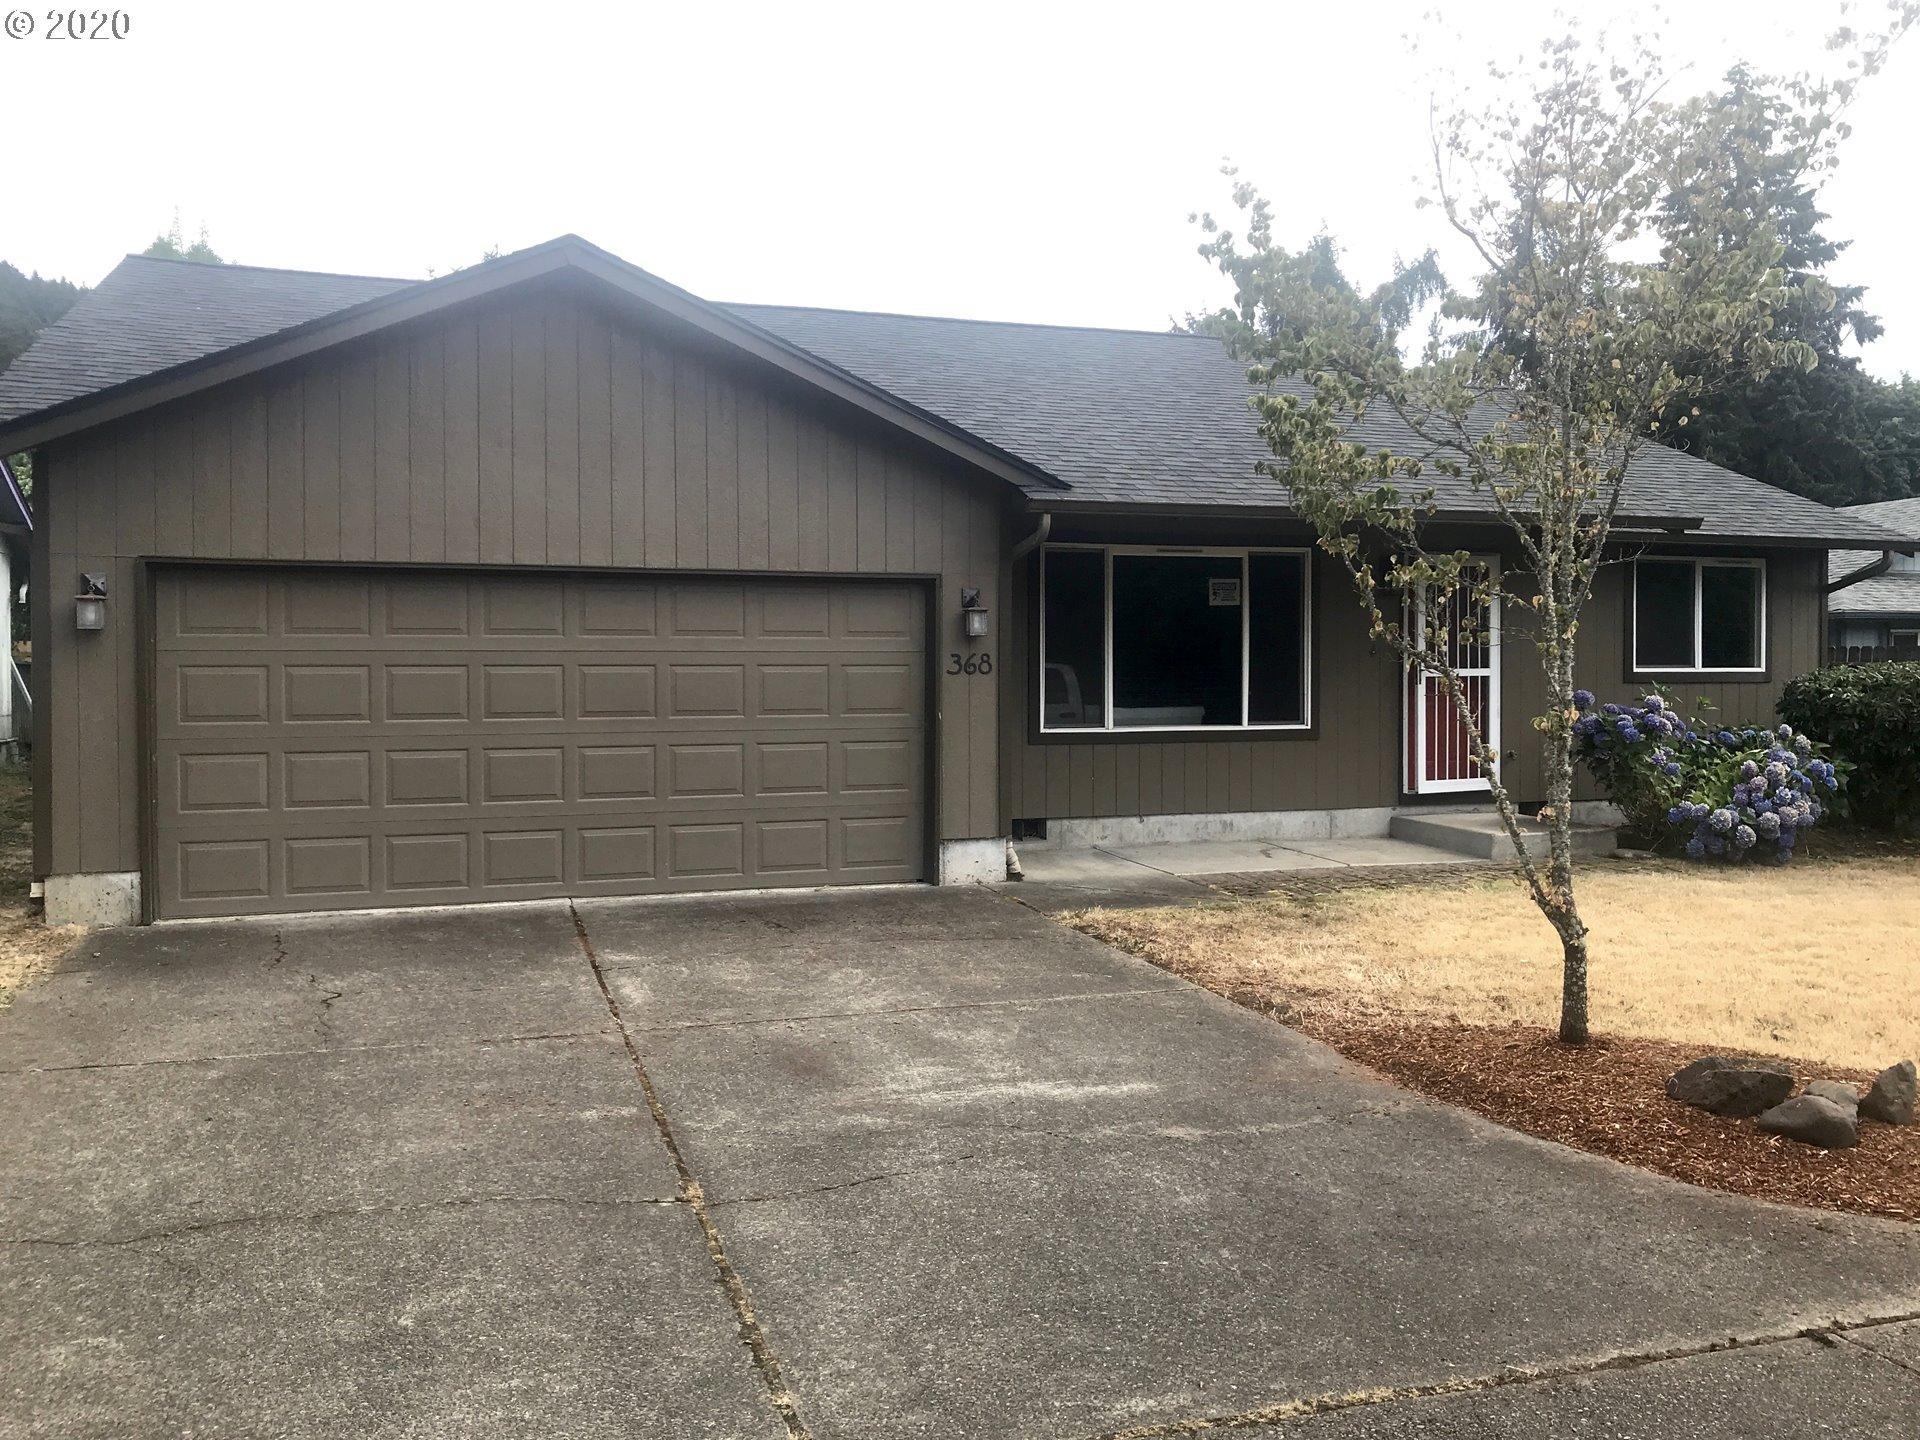 368 S 70TH PL, Springfield OR 97478